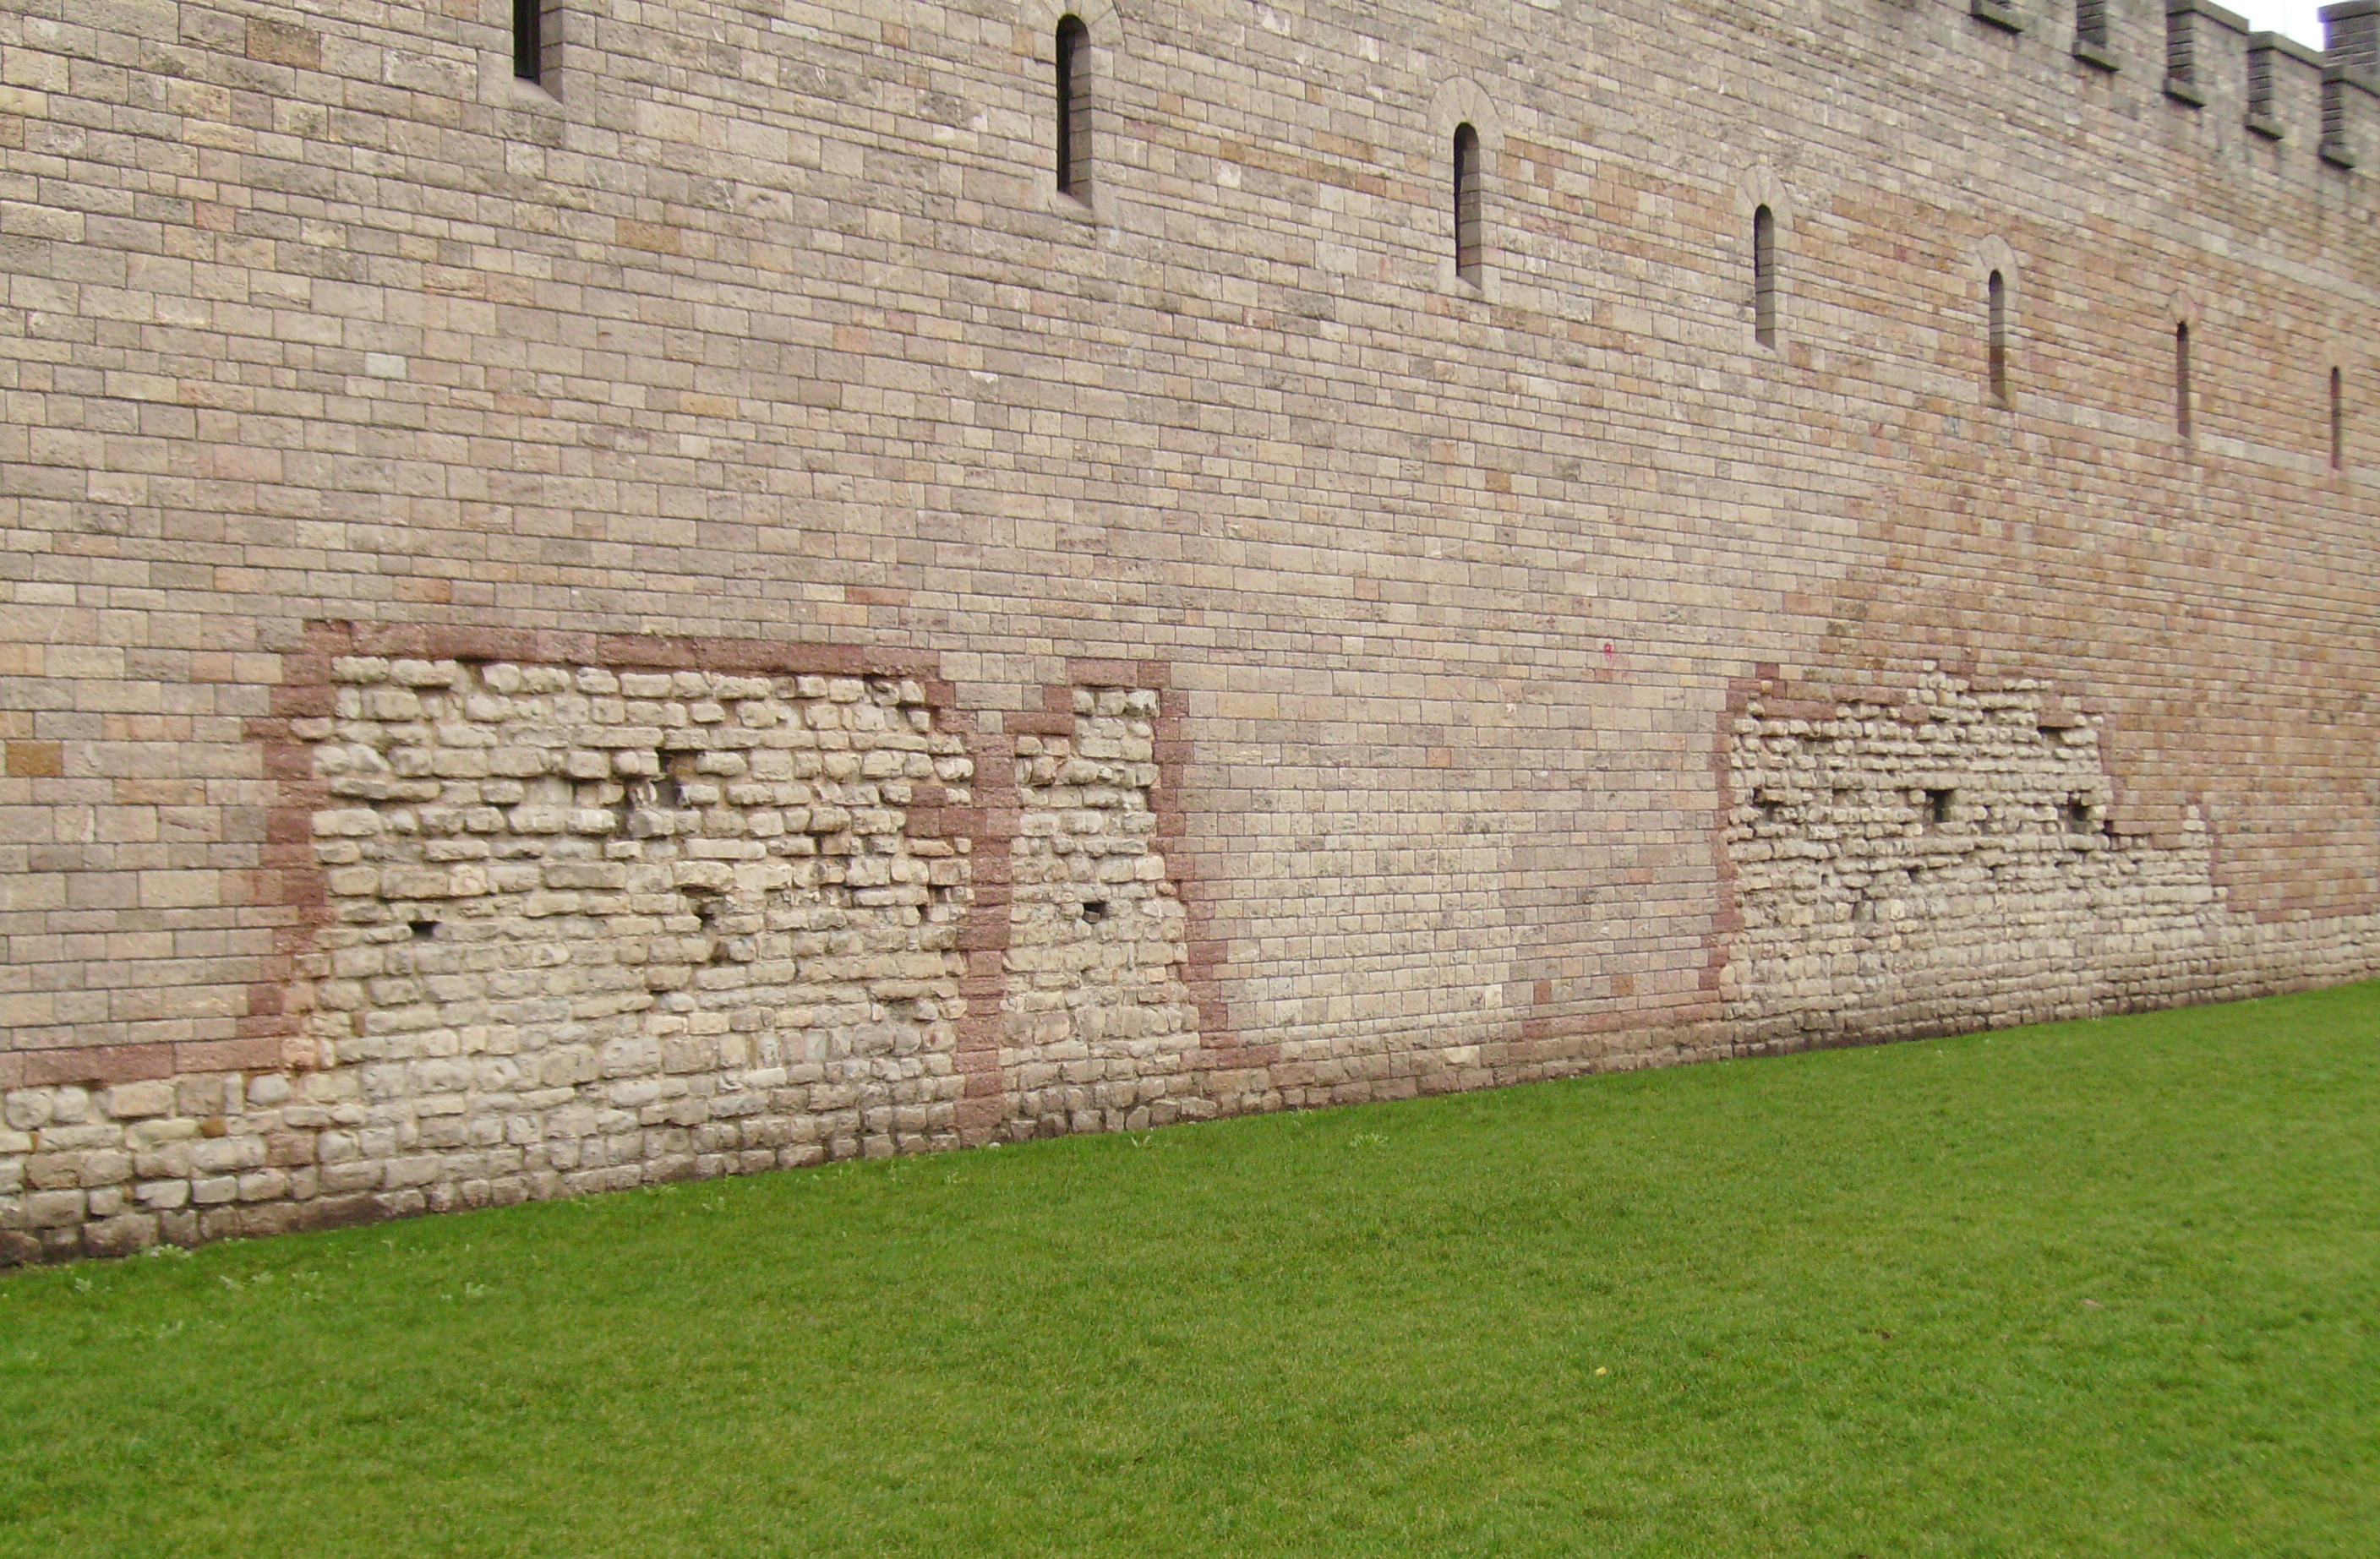 Wall Photo wall of cardiff castle - free public domain stock photo - cc0 images